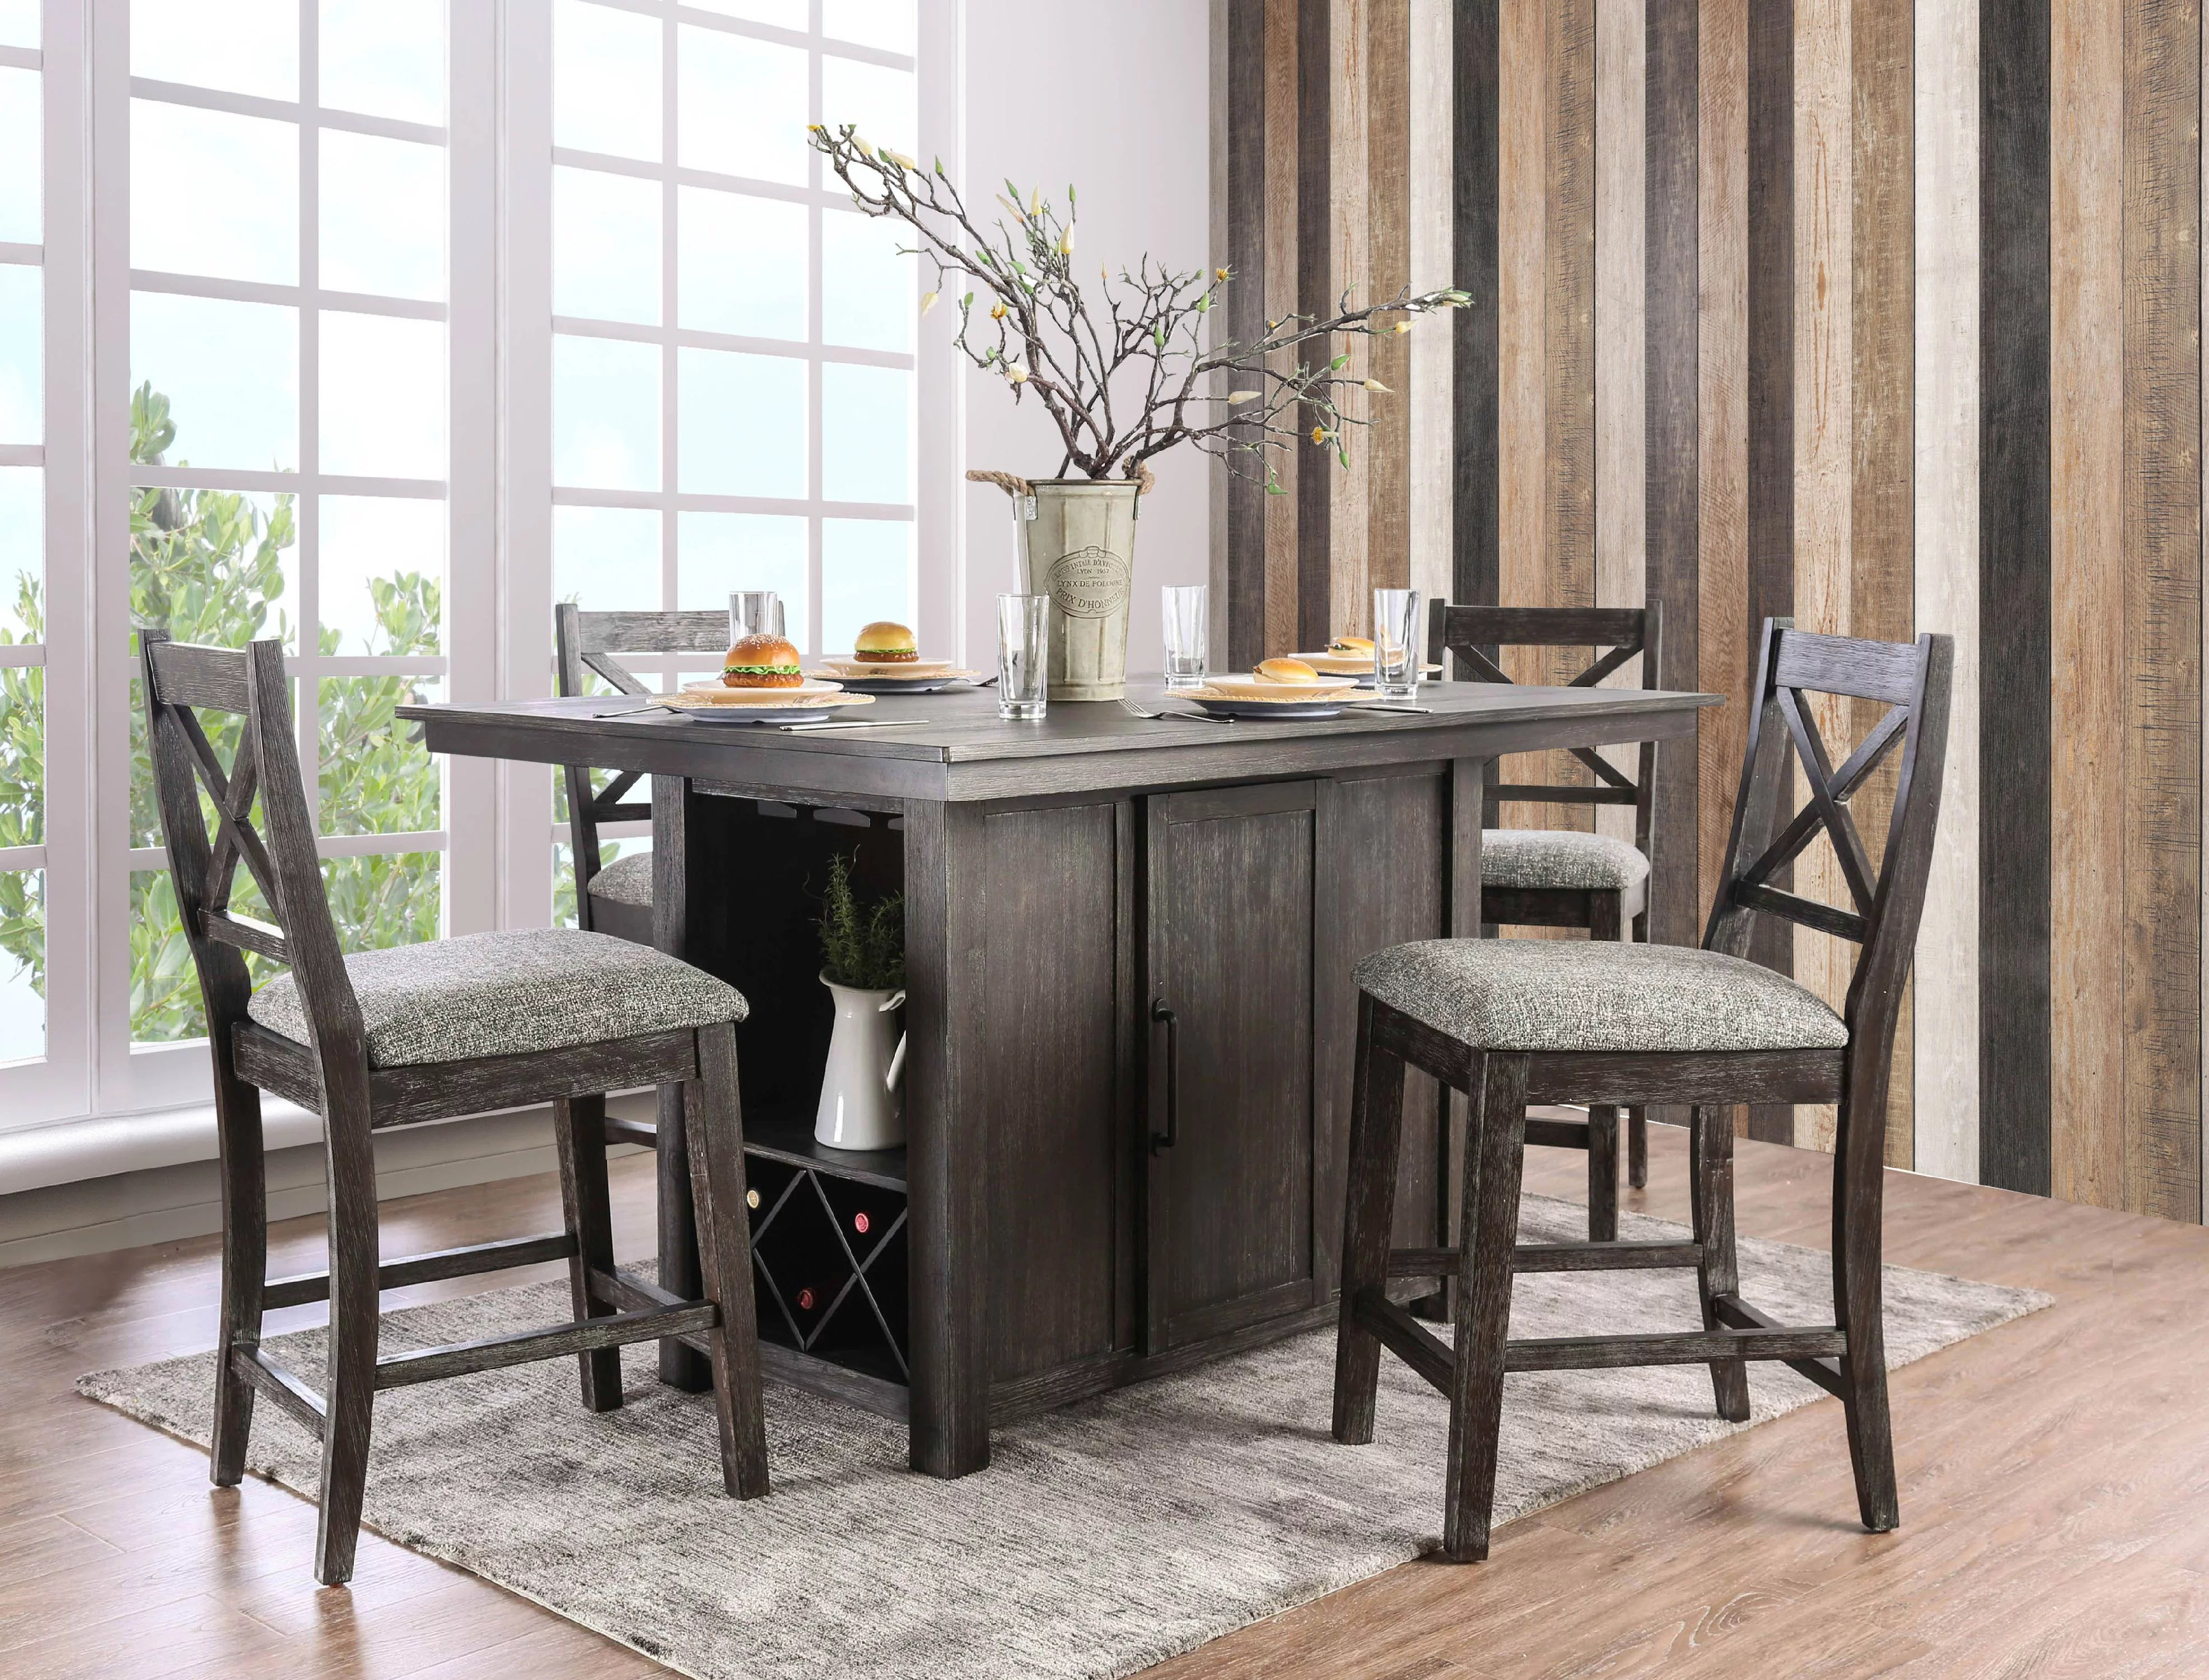 Furniture of America Toby 5-Piece Rustic Farmhouse Counter ... on Farmhouse Counter Tops  id=66205